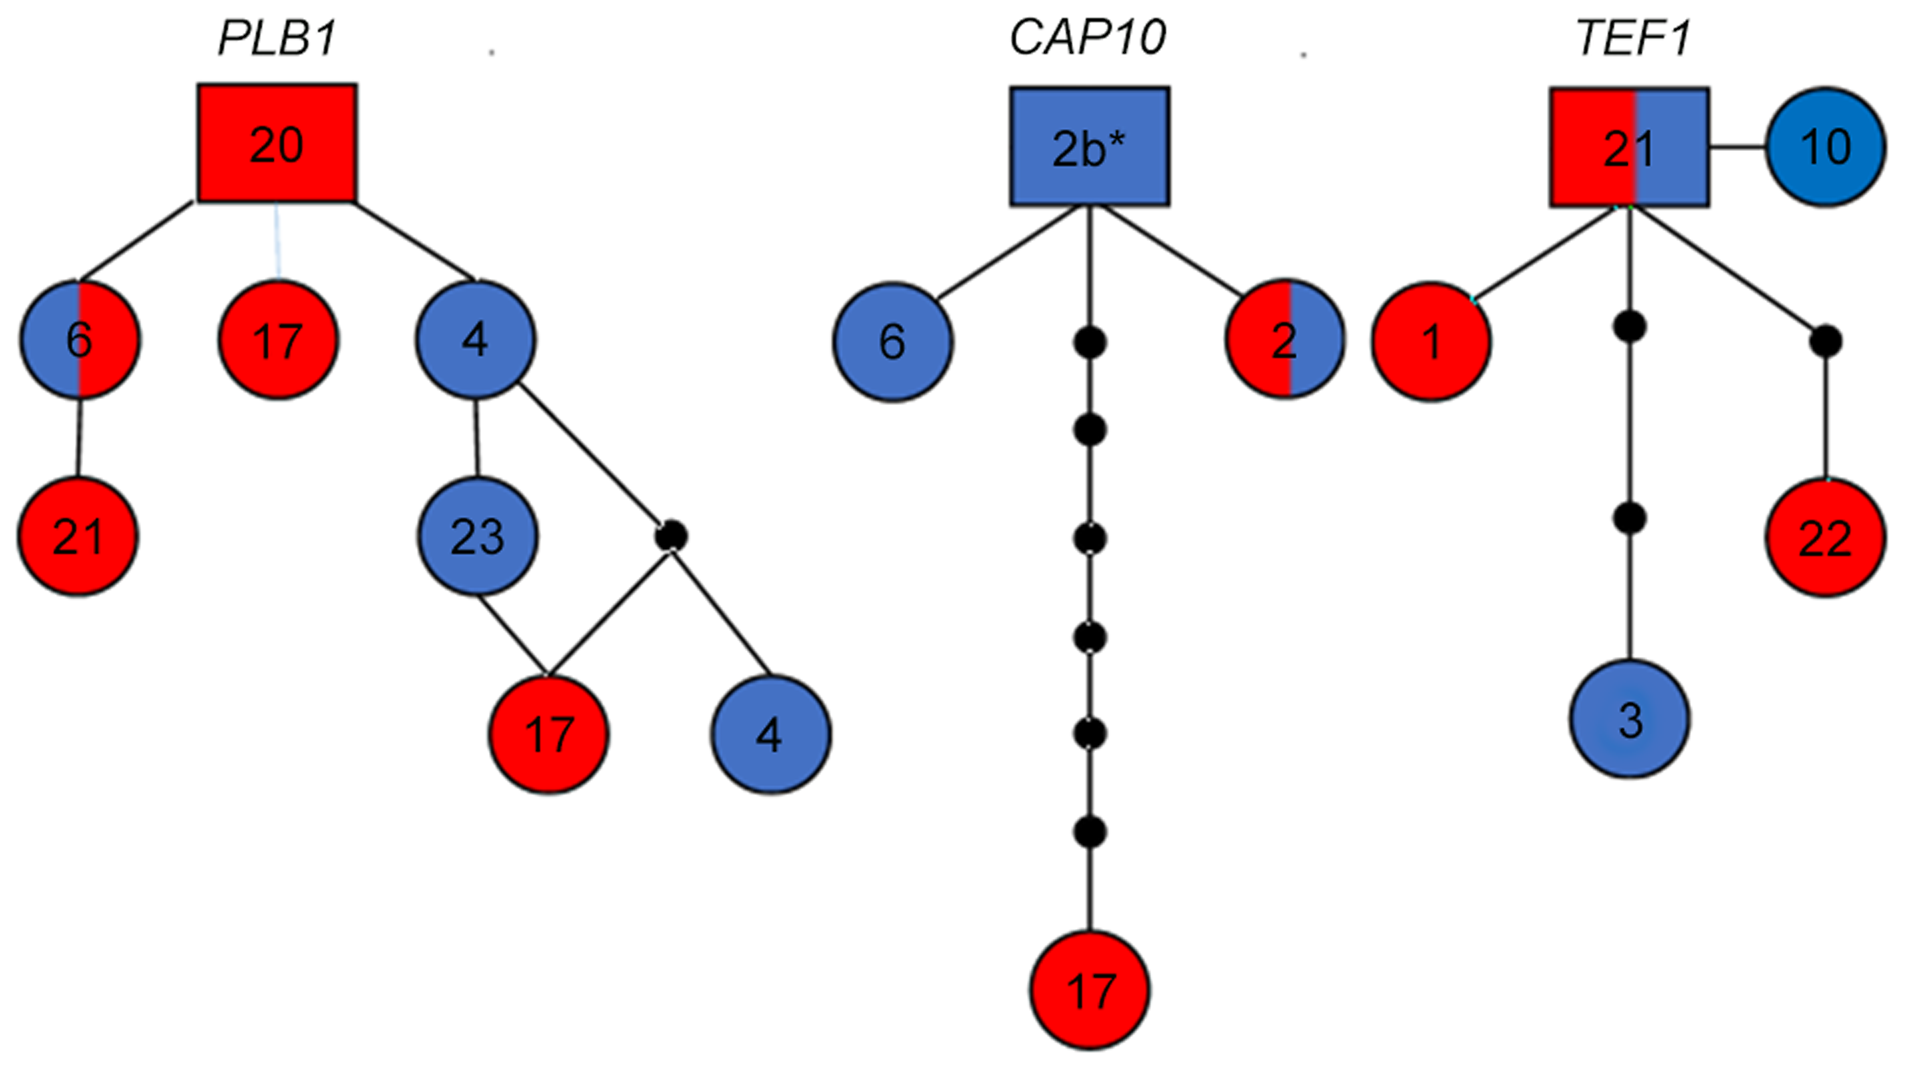 Haplotype network analysis suggests recent introgression between VGIIIa and VGIIIb.